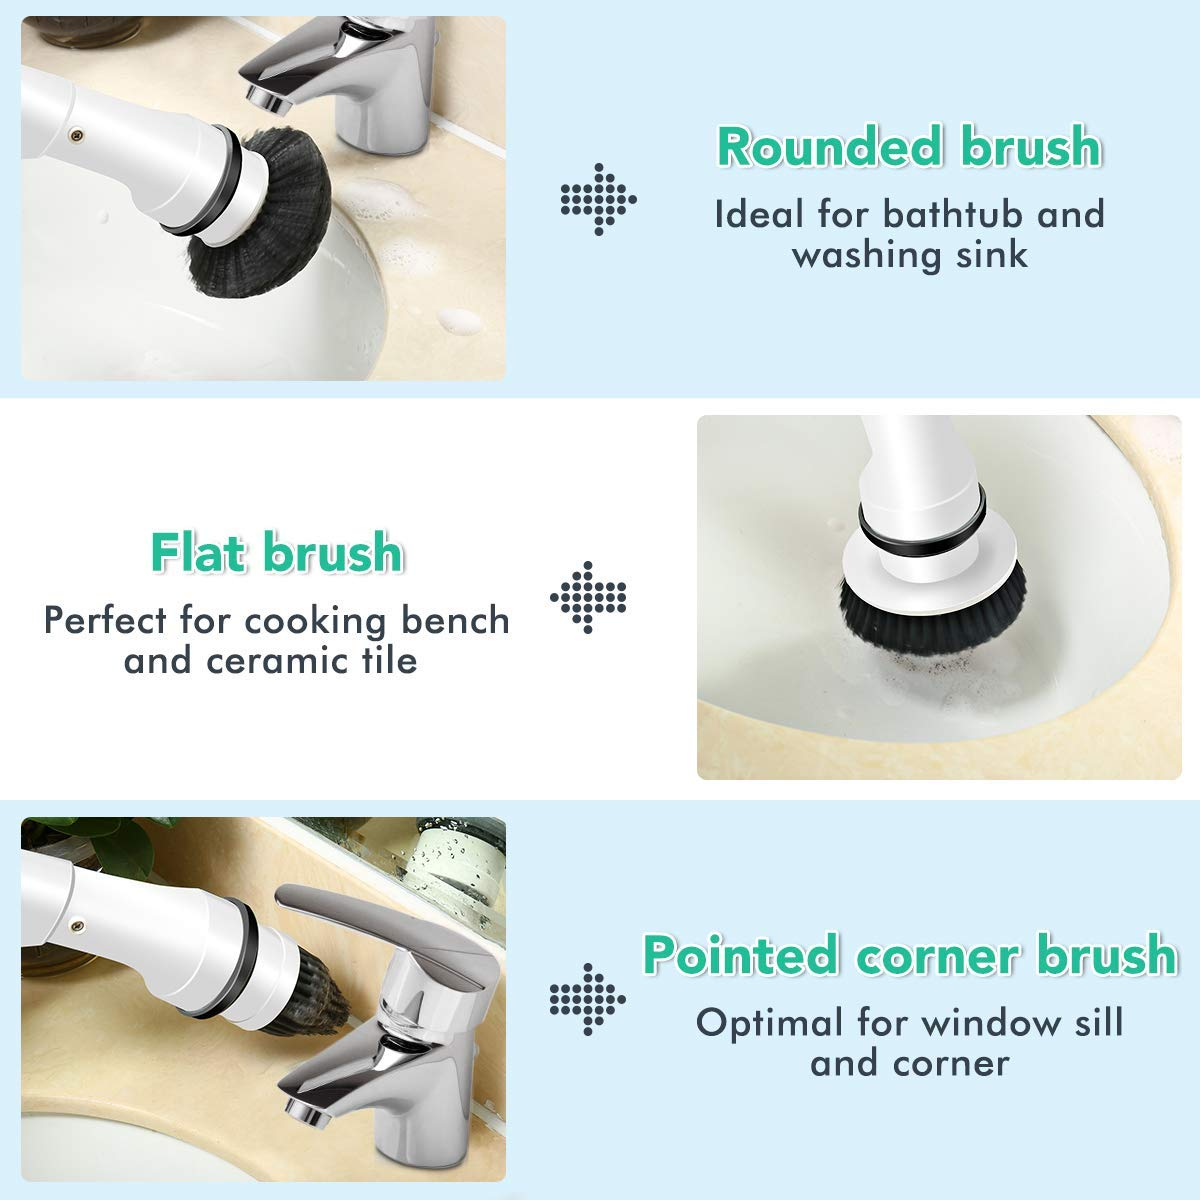 MECO Electric Spin Scrubber Power Cordless Tub and Tile Scrubber, 360 Handheld Cleaning supplies with 3 Replaceable Brush Heads, High Rotation for Bathroom, Floor, Kitchen, Car, Sink, Wall, Window by MECO (Image #4)